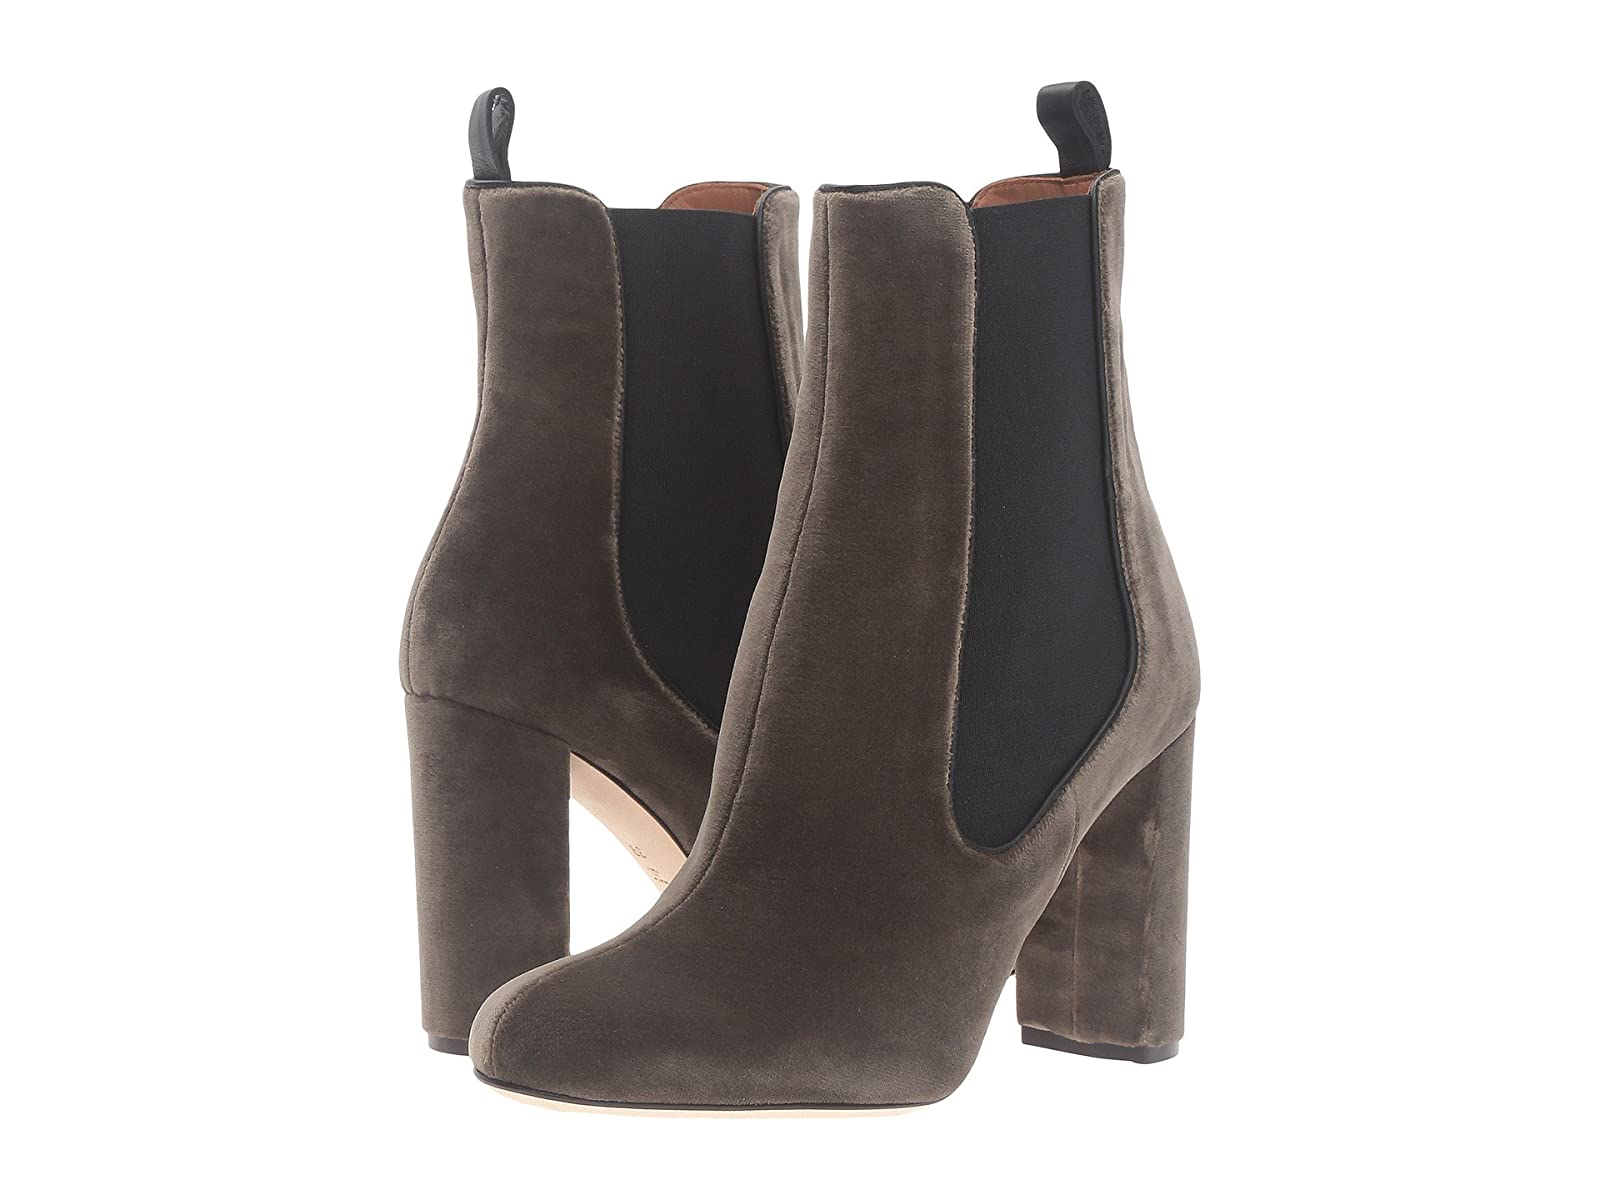 M Missoni Leather Ankle BootsCheap and distinctive eye-catching shoes